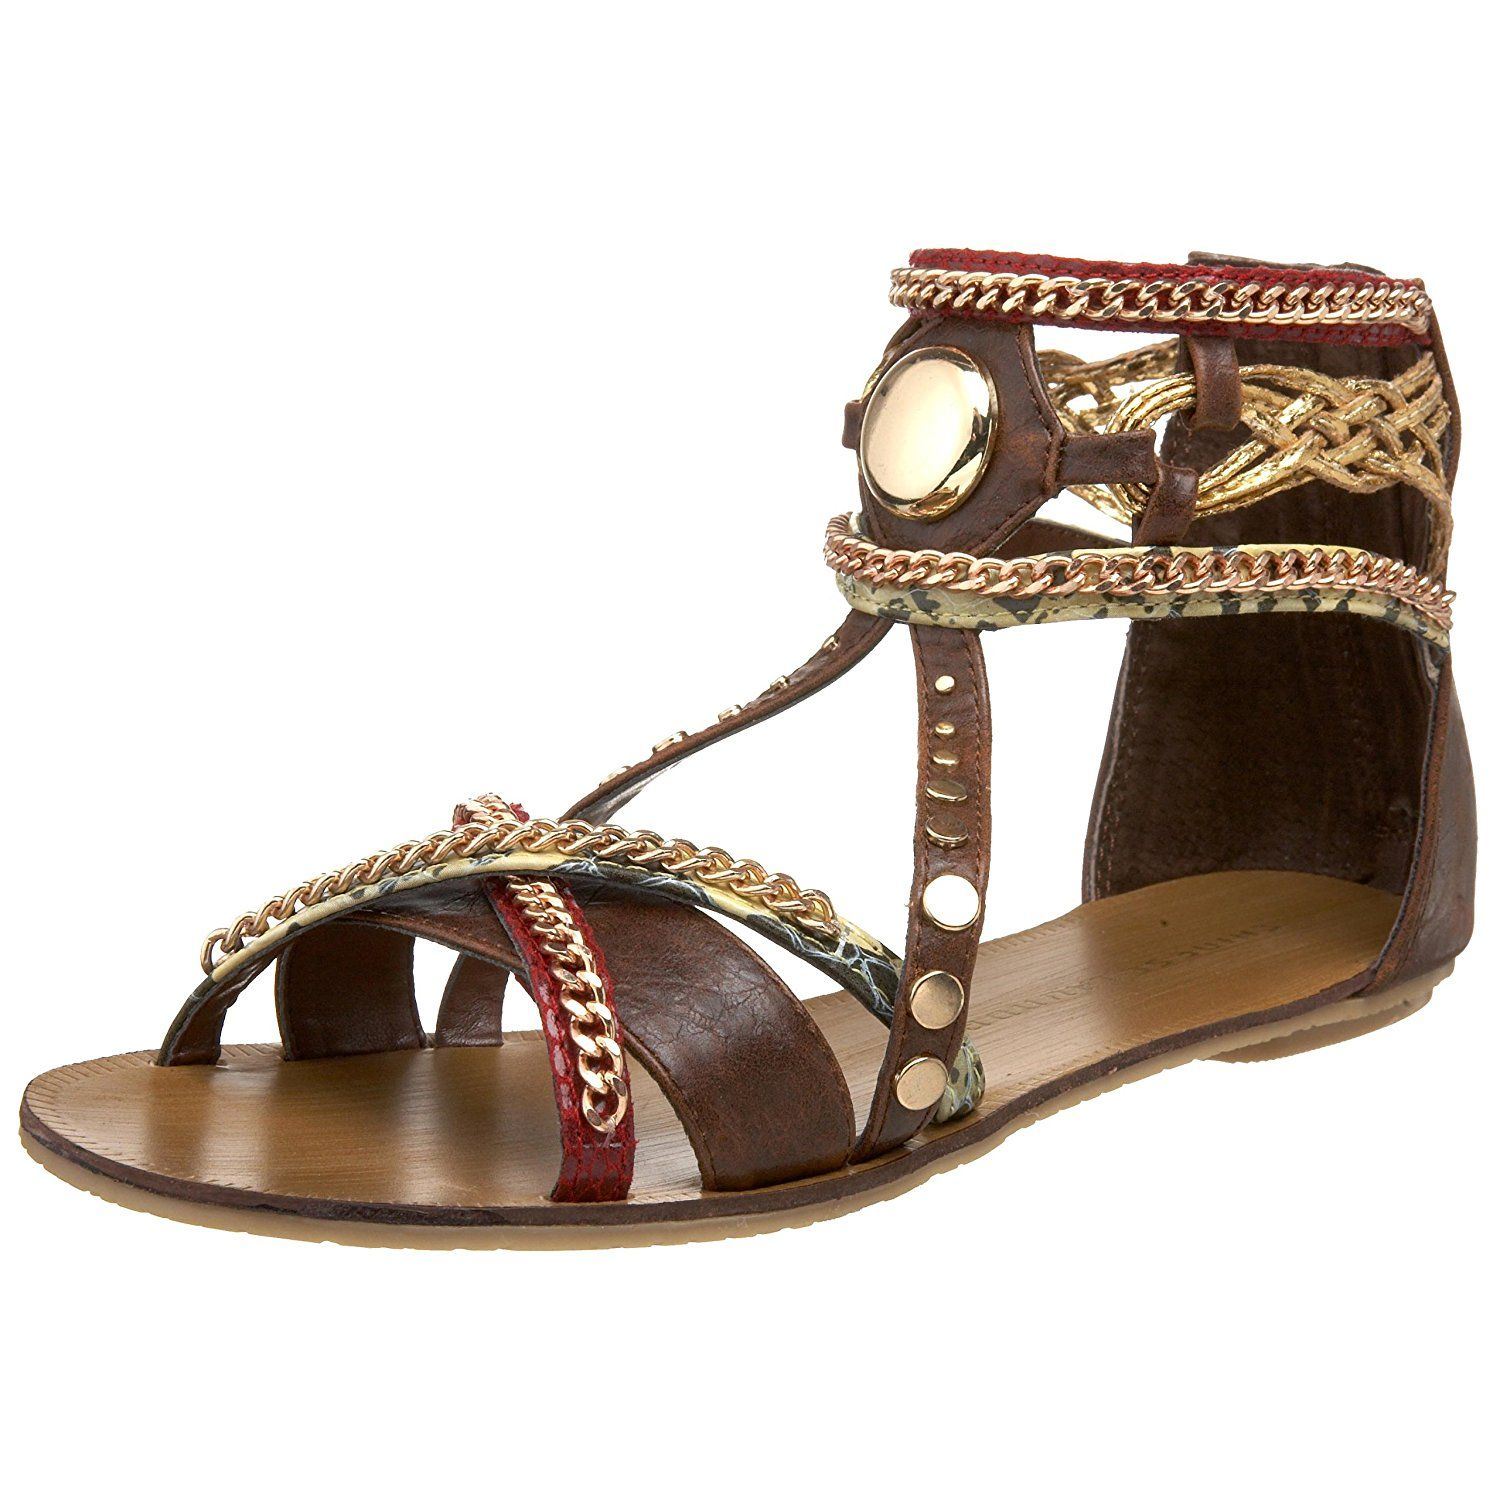 5637b846f826 Chinese Laundry Women s Retouch Gladiator Sandal   Click image to review  more details.